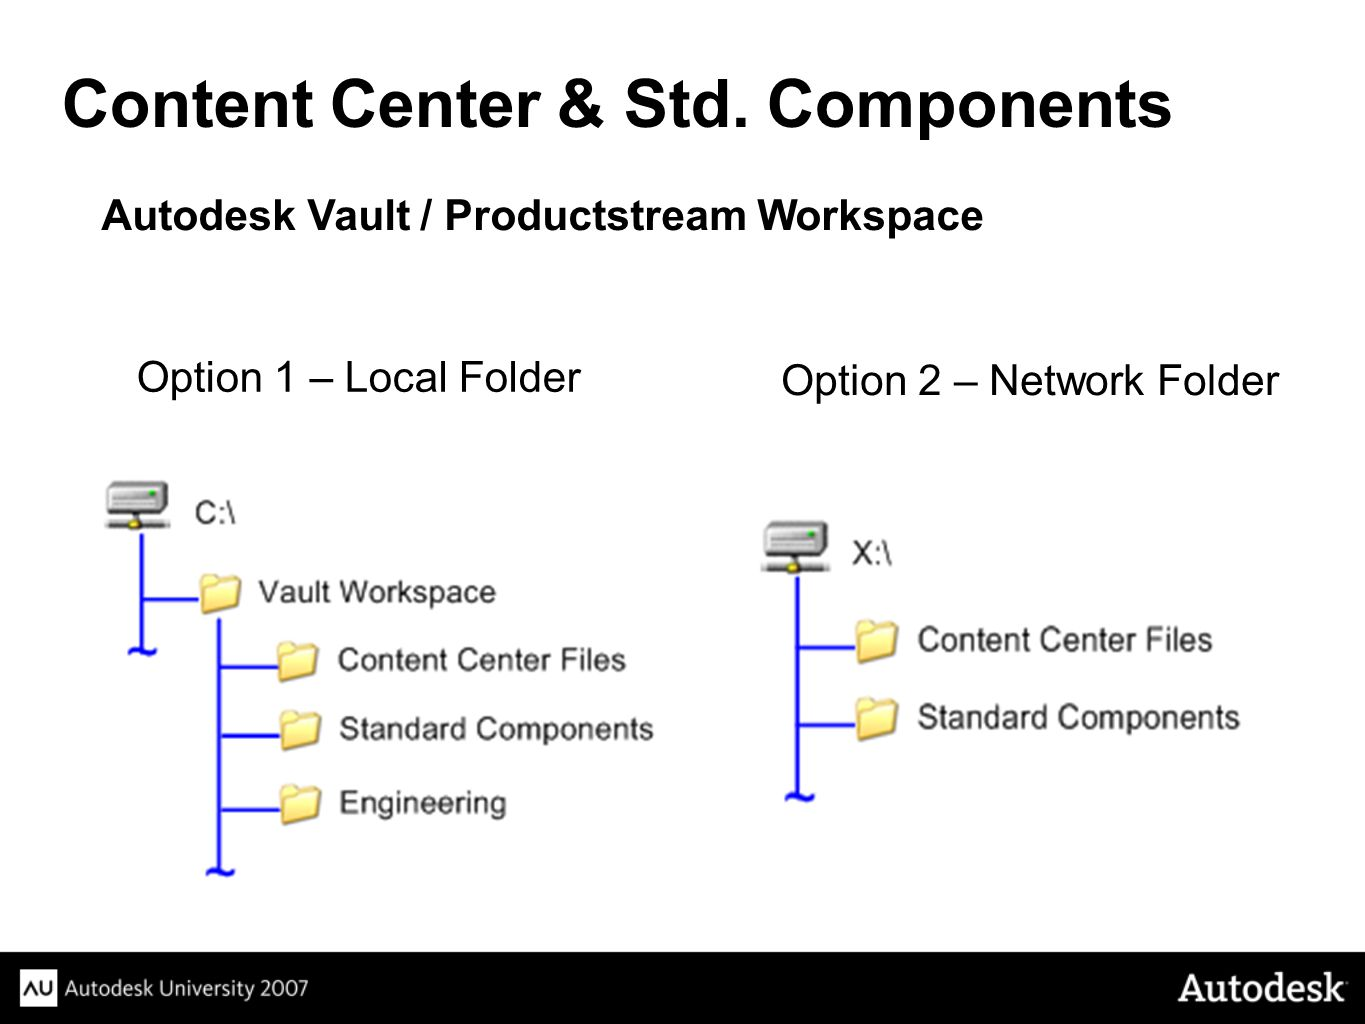 Content Center & Std. Components